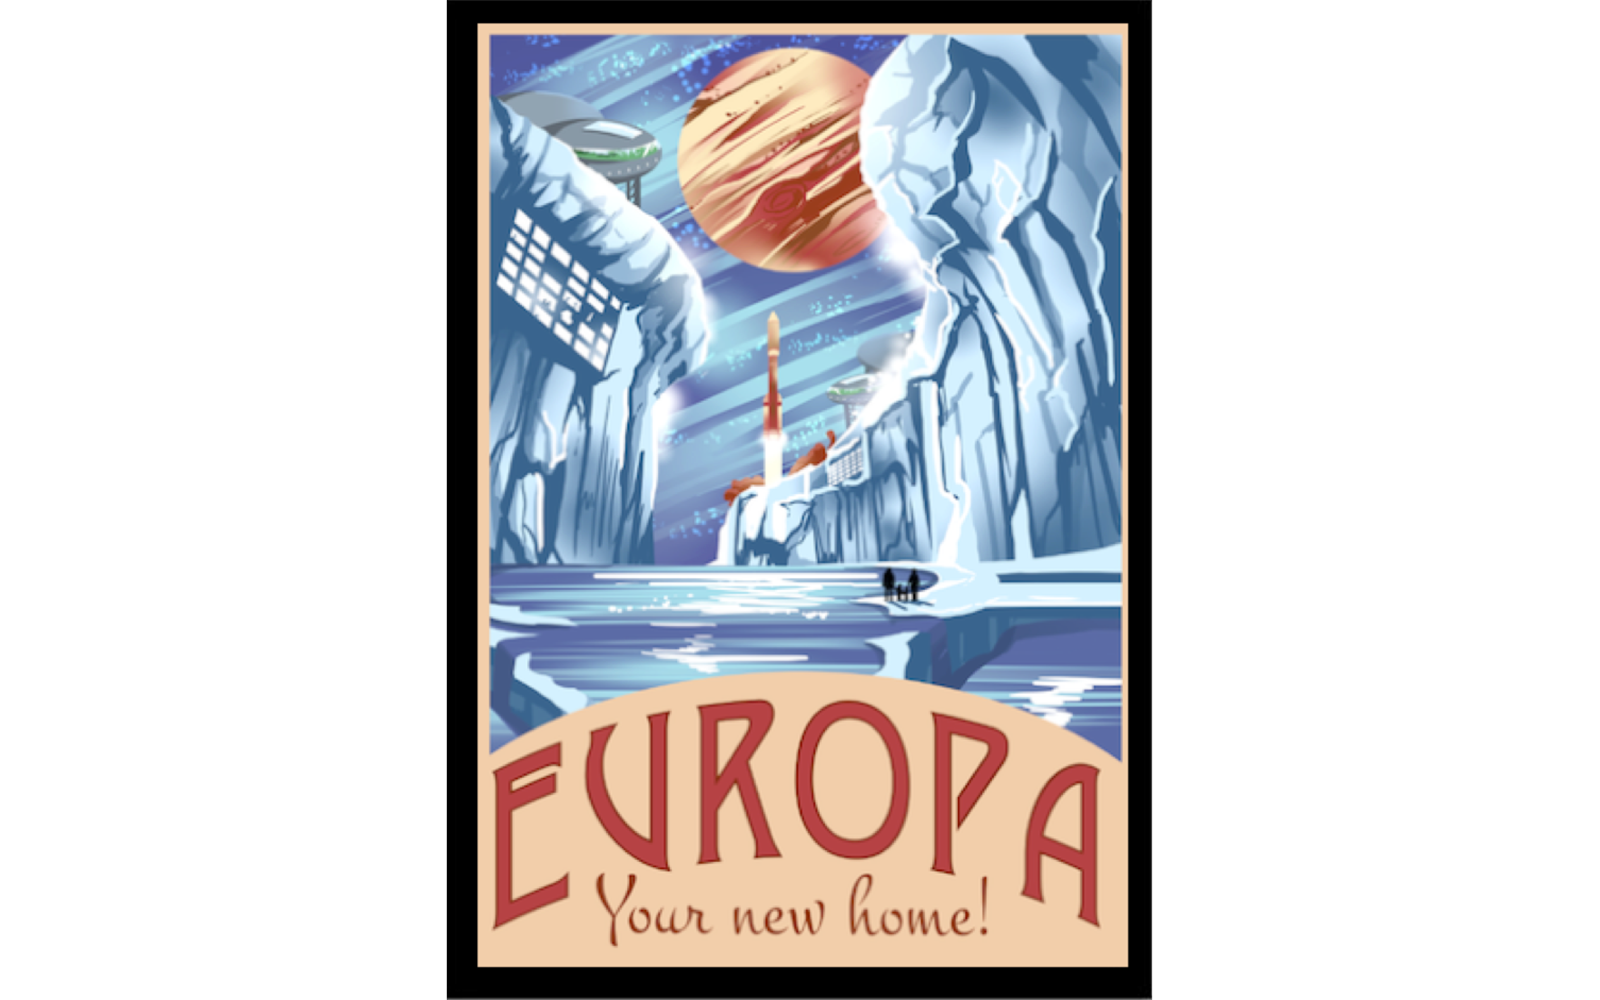 Vintage Space Posters: Book an Extended Stay Villa on Europa